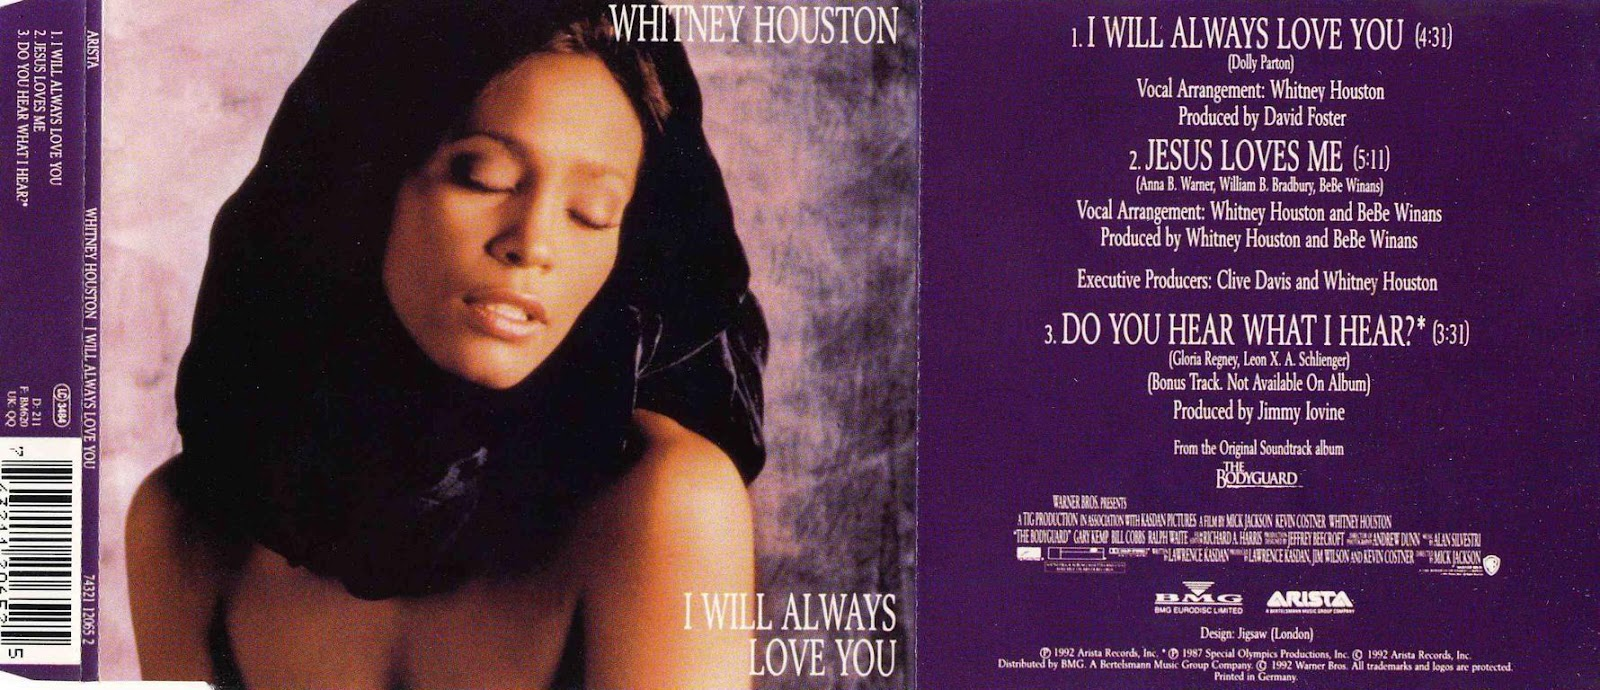 Whitney houston i will always love you lyrics